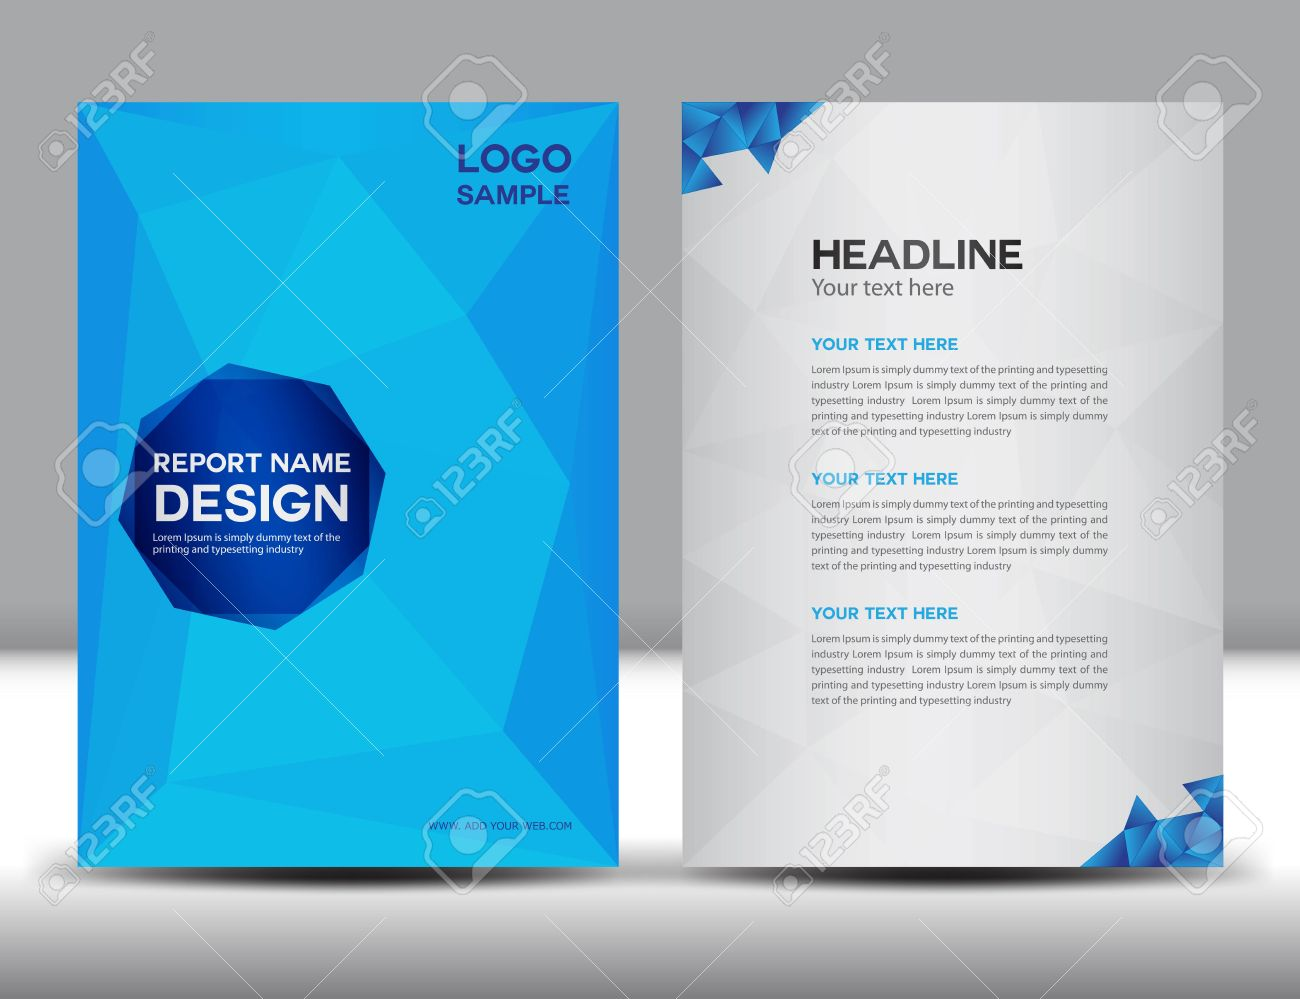 blue cover annual report template polygon background brochure blue cover annual report template polygon background brochure design cover template flyer